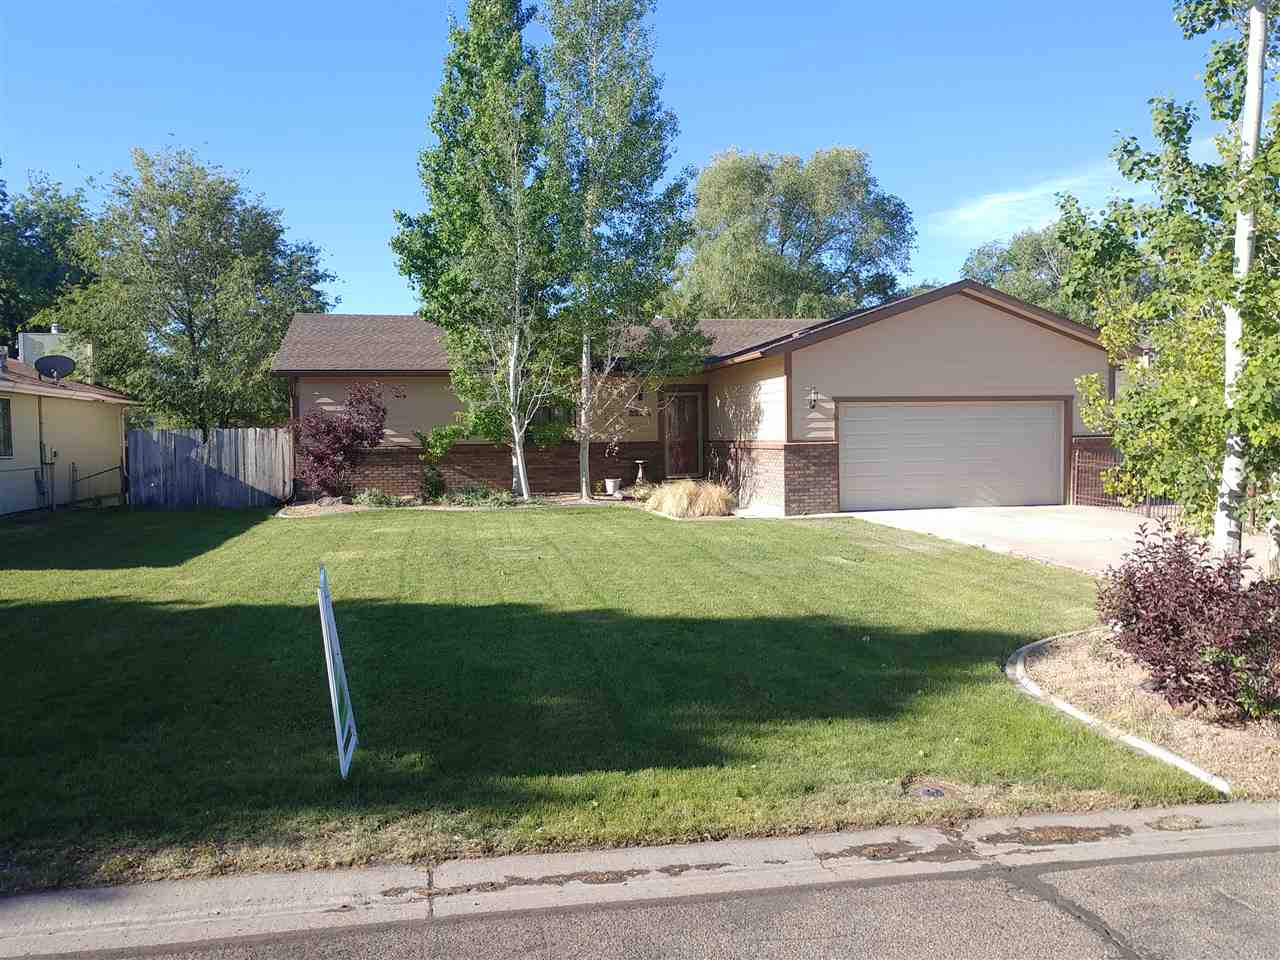 2291 1/2 S Arriba Circle, Grand Junction, CO 81507